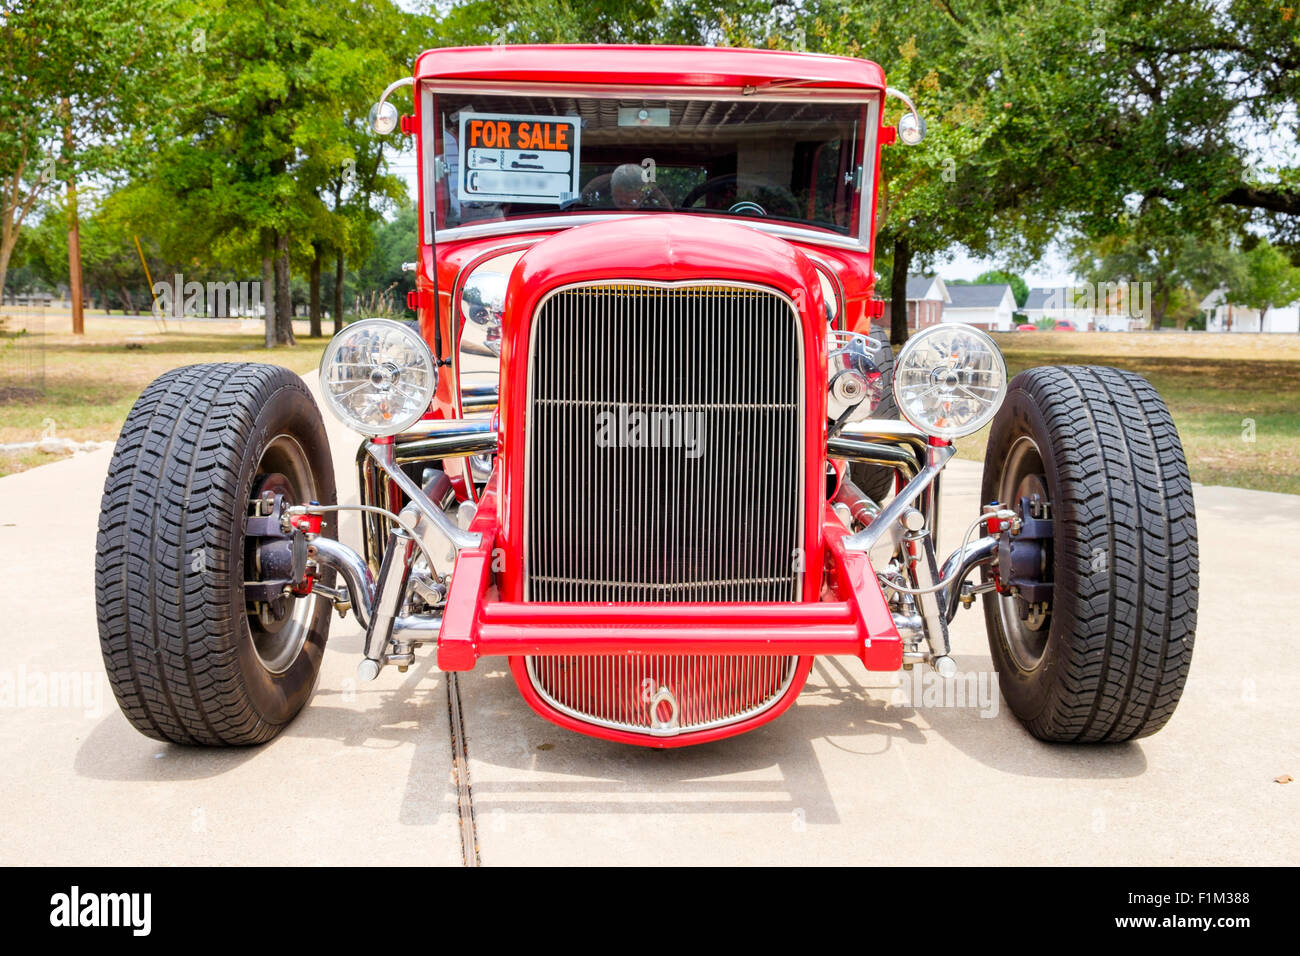 Fantastic Www.hot Rods For Sale Gallery - Classic Cars Ideas - boiq.info